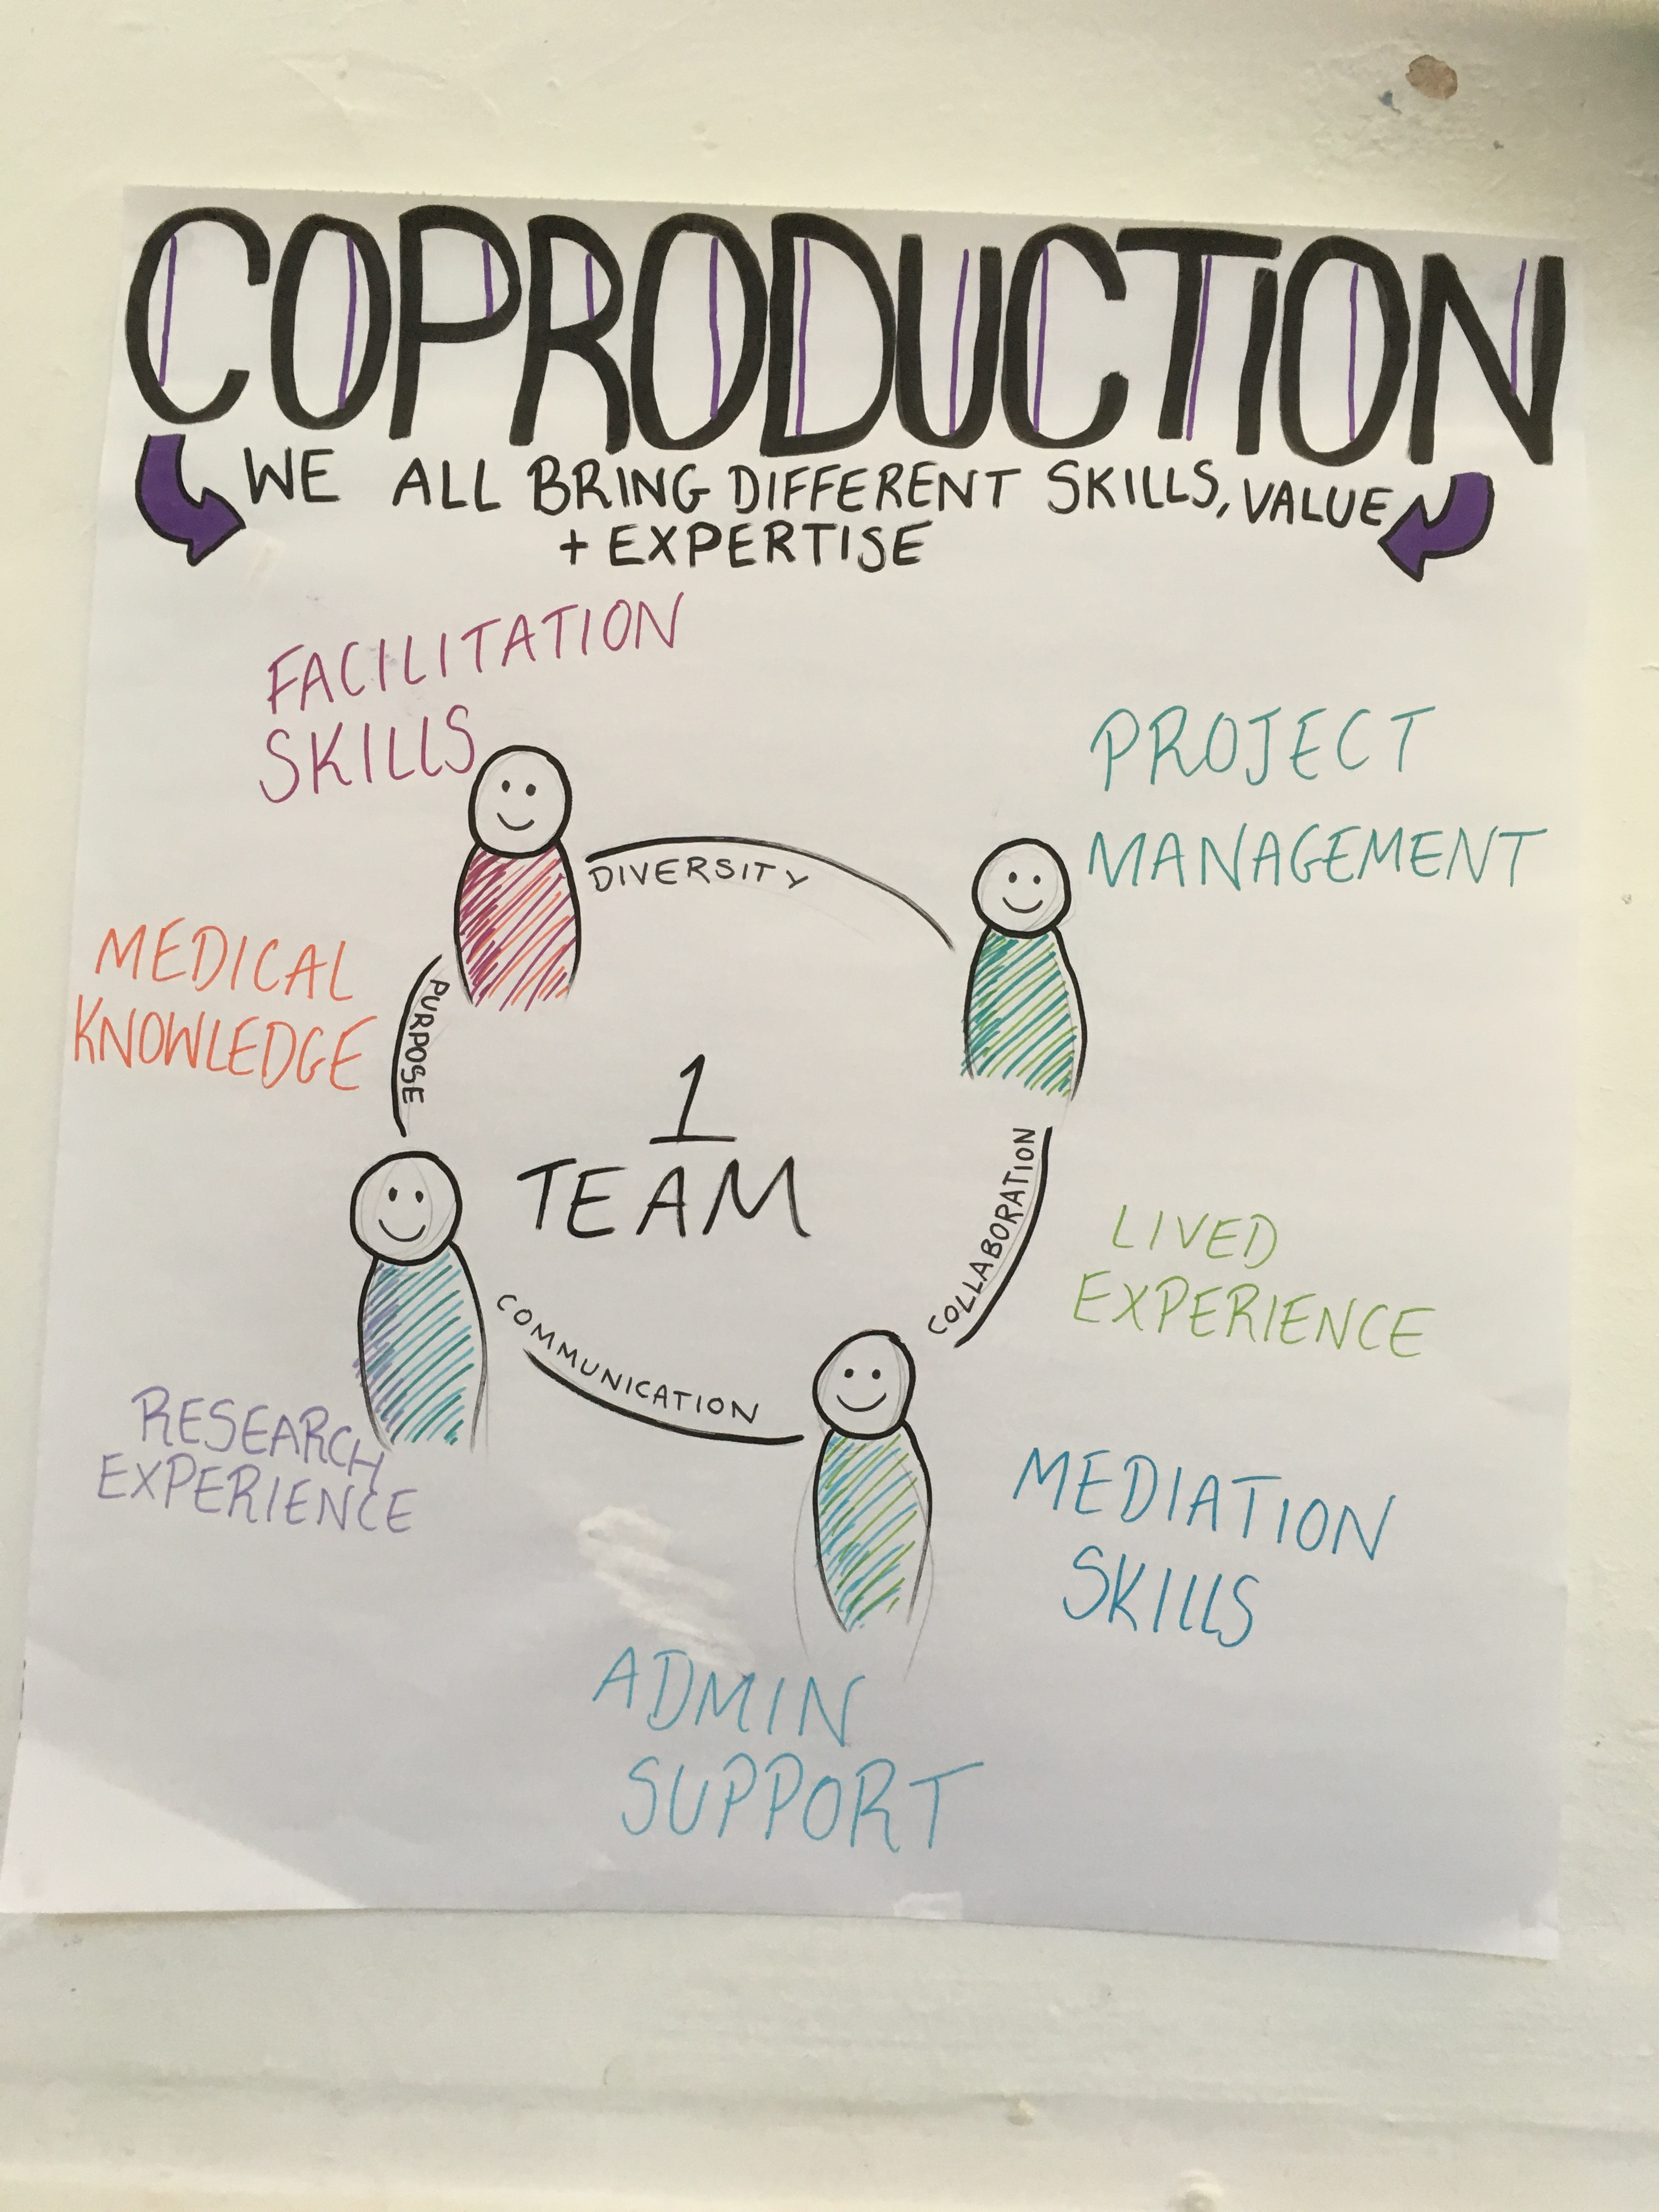 image shows 4 people sat around a table with different types of skills listed (such as project management, lived experience, research experience) with the title, 'Co-production – we all bring different skills, value and expertise'